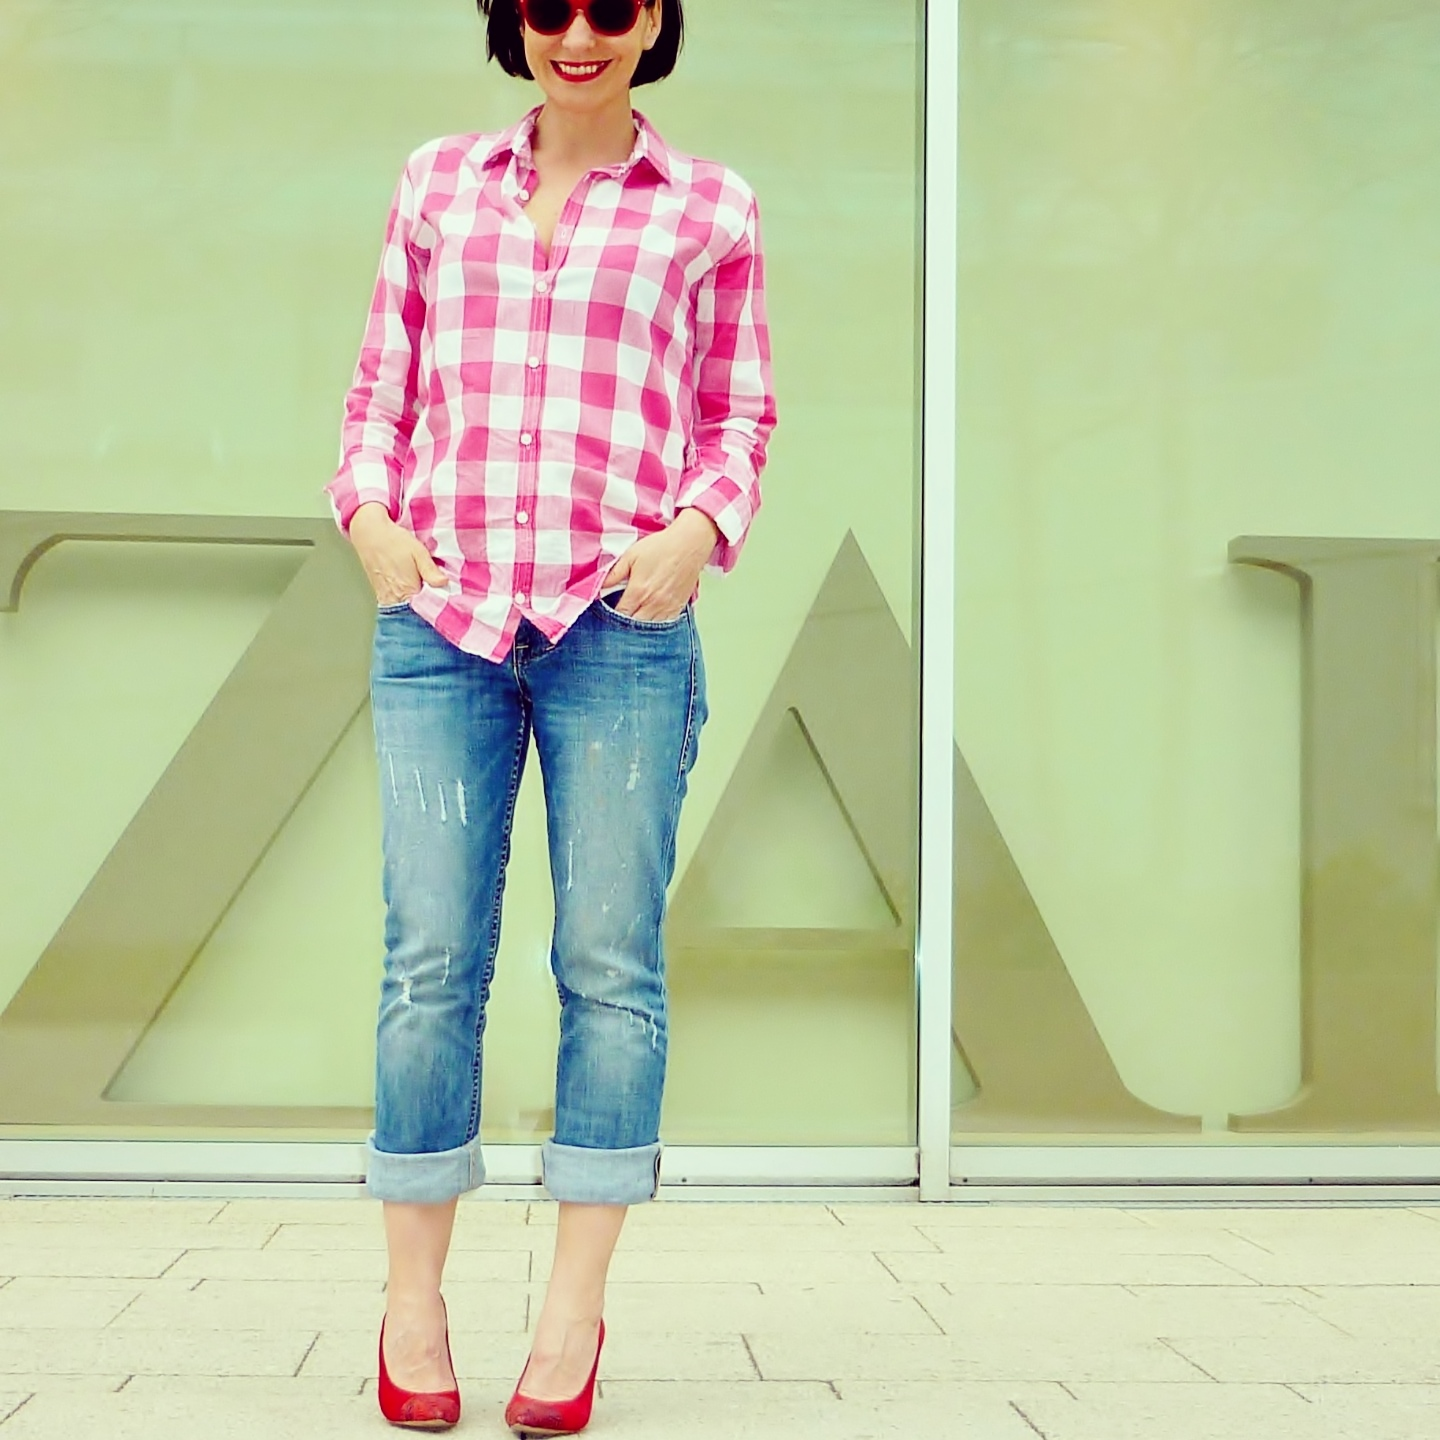 Streetstyle-red-shoes-red-sunglasses